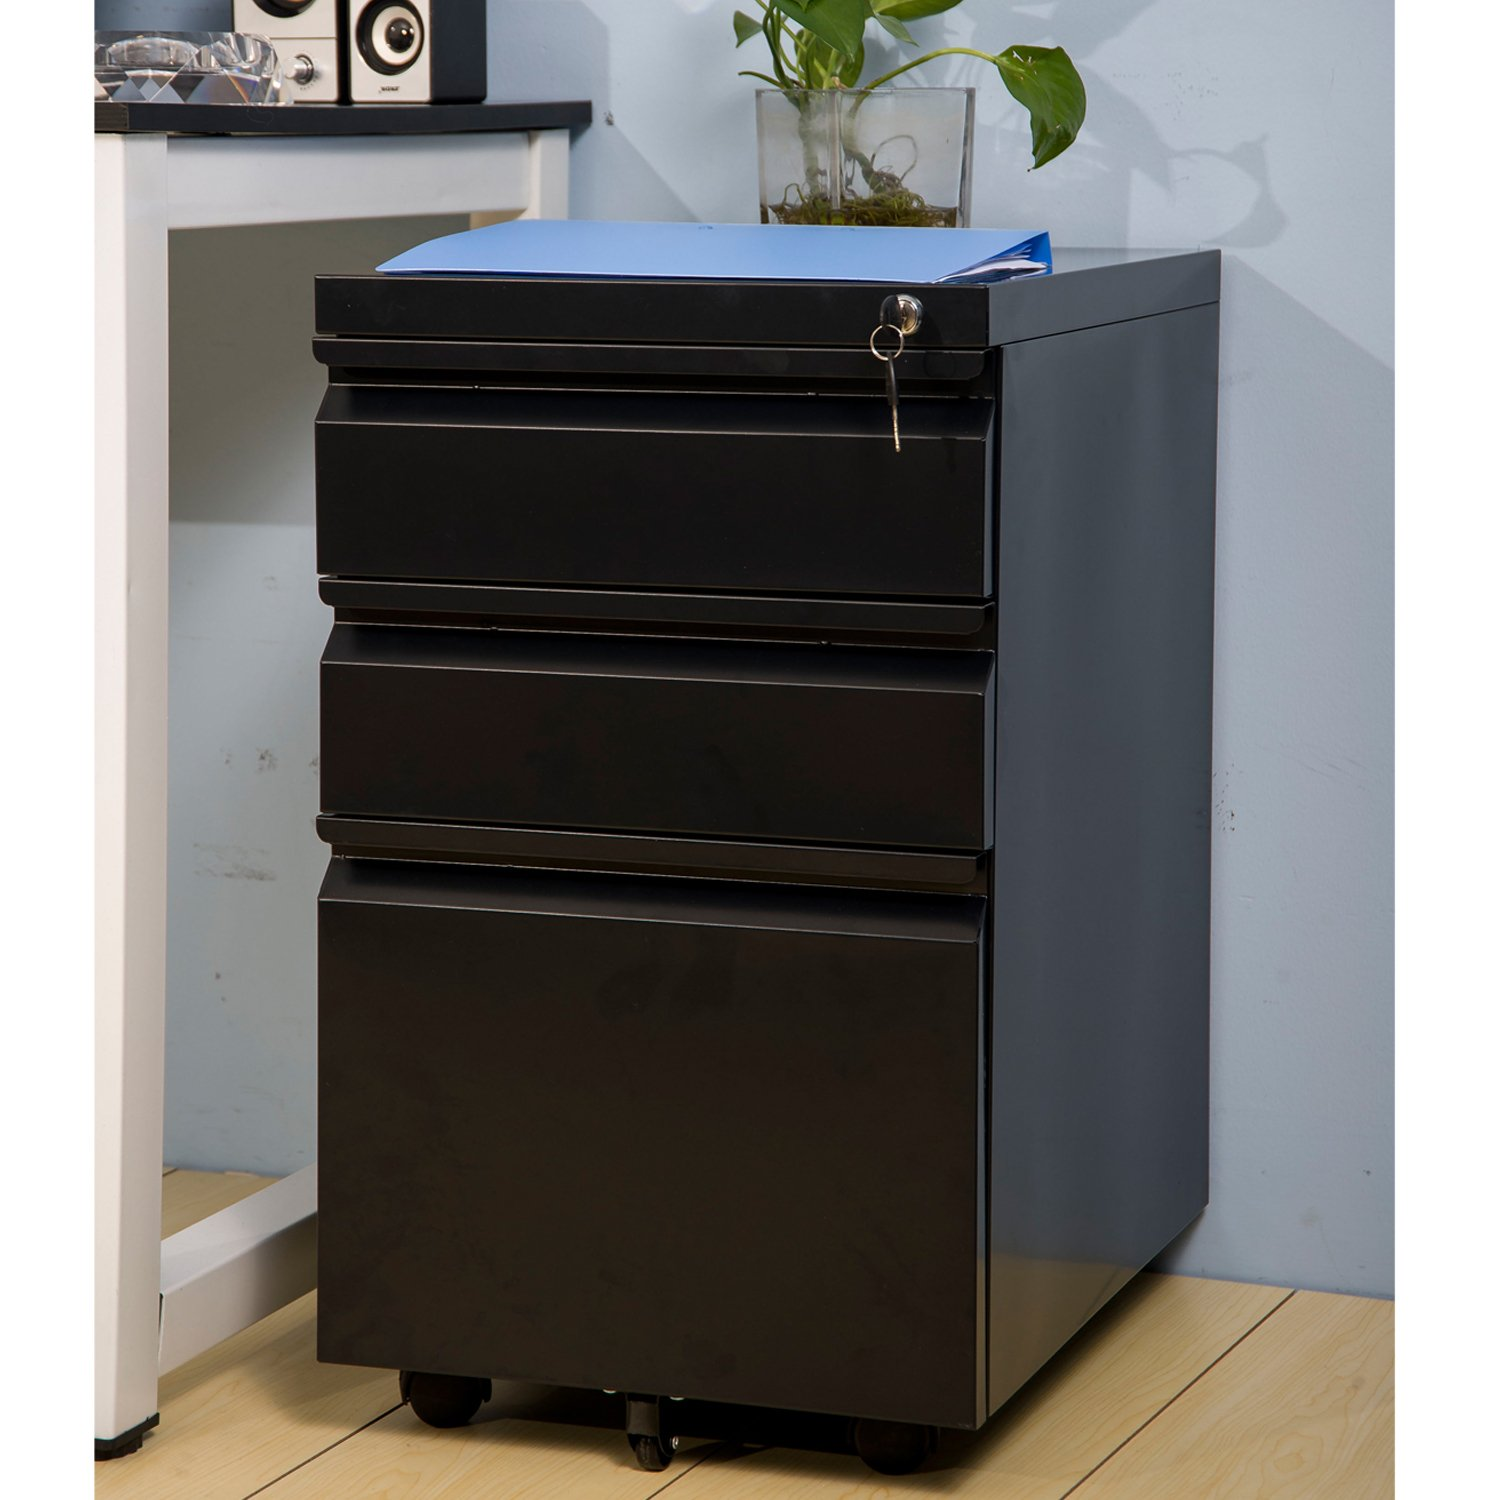 Merax Metal Solid Mobile Storage 3 Drawer File Cabinet with Keys - Fully Assembled Except Casters(Black)